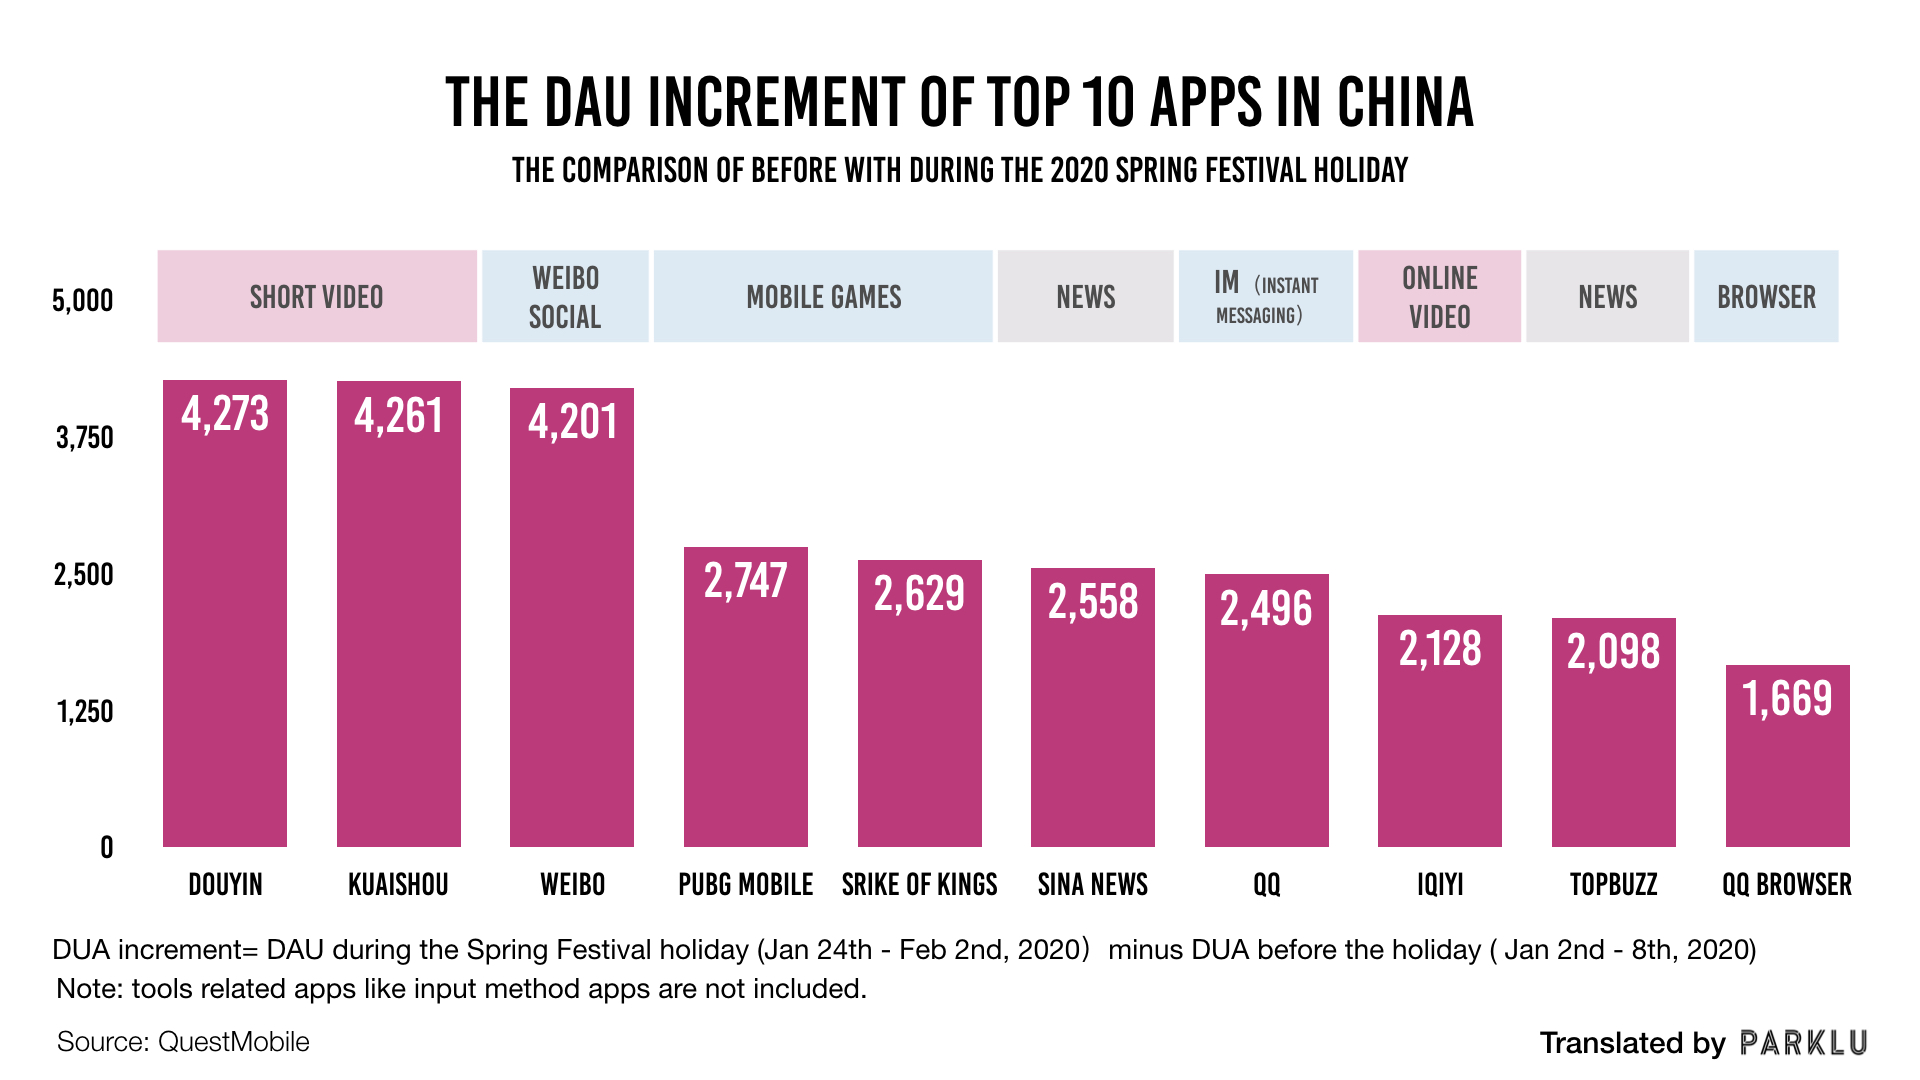 DUA increment of Top 10 apps in China during the Coronavirus